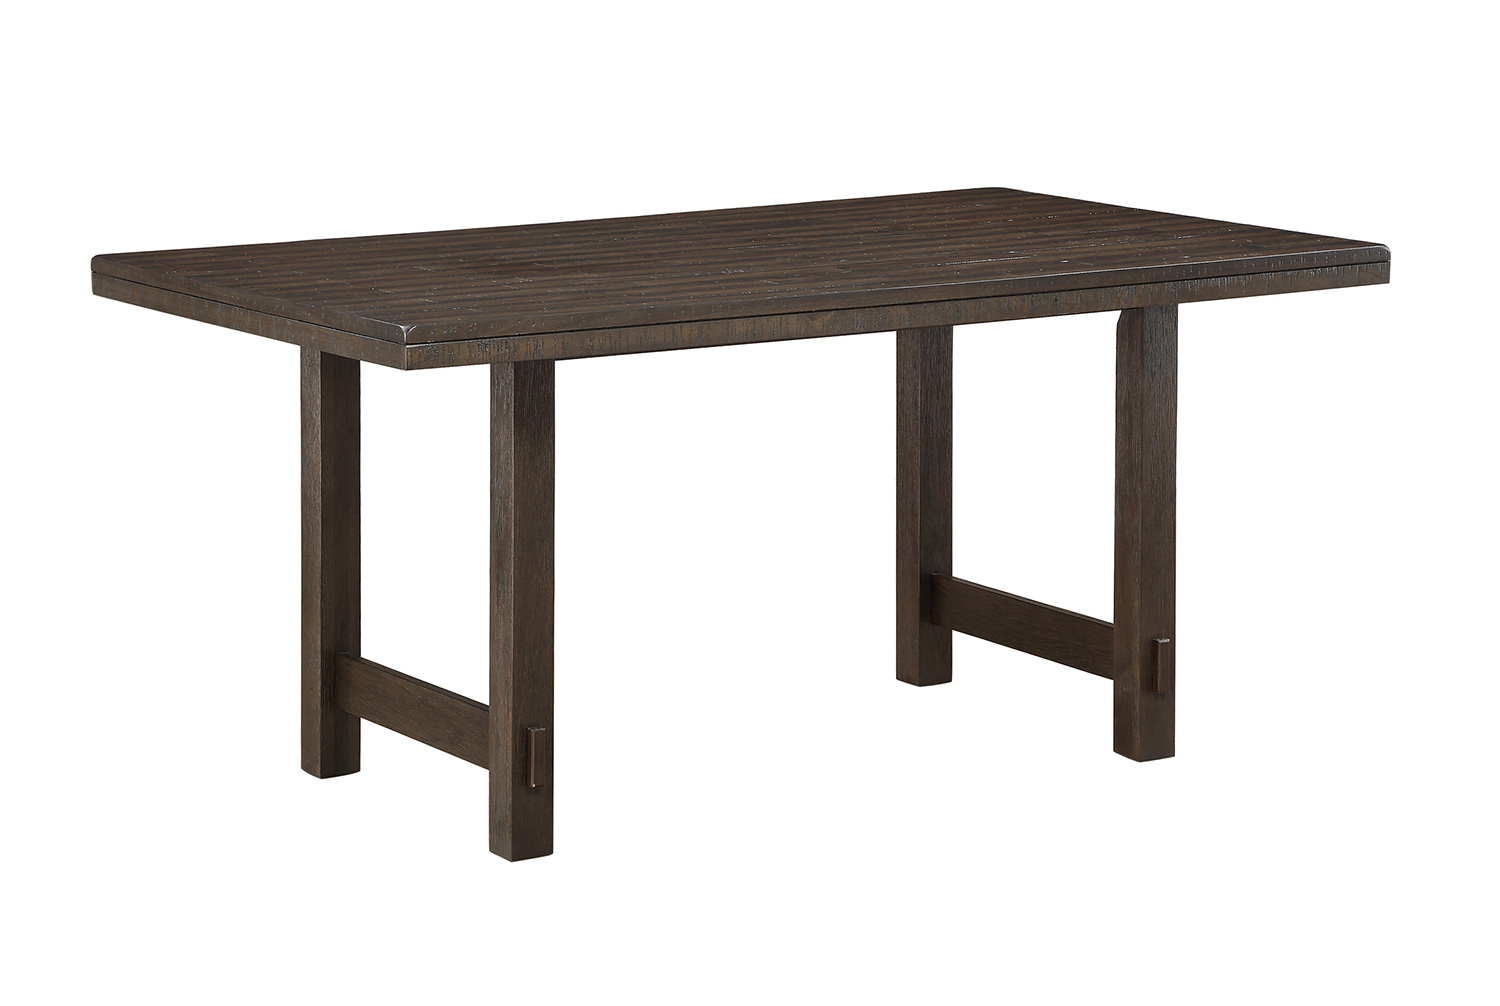 Homelegance Brim Dining Table - Brown Cherry